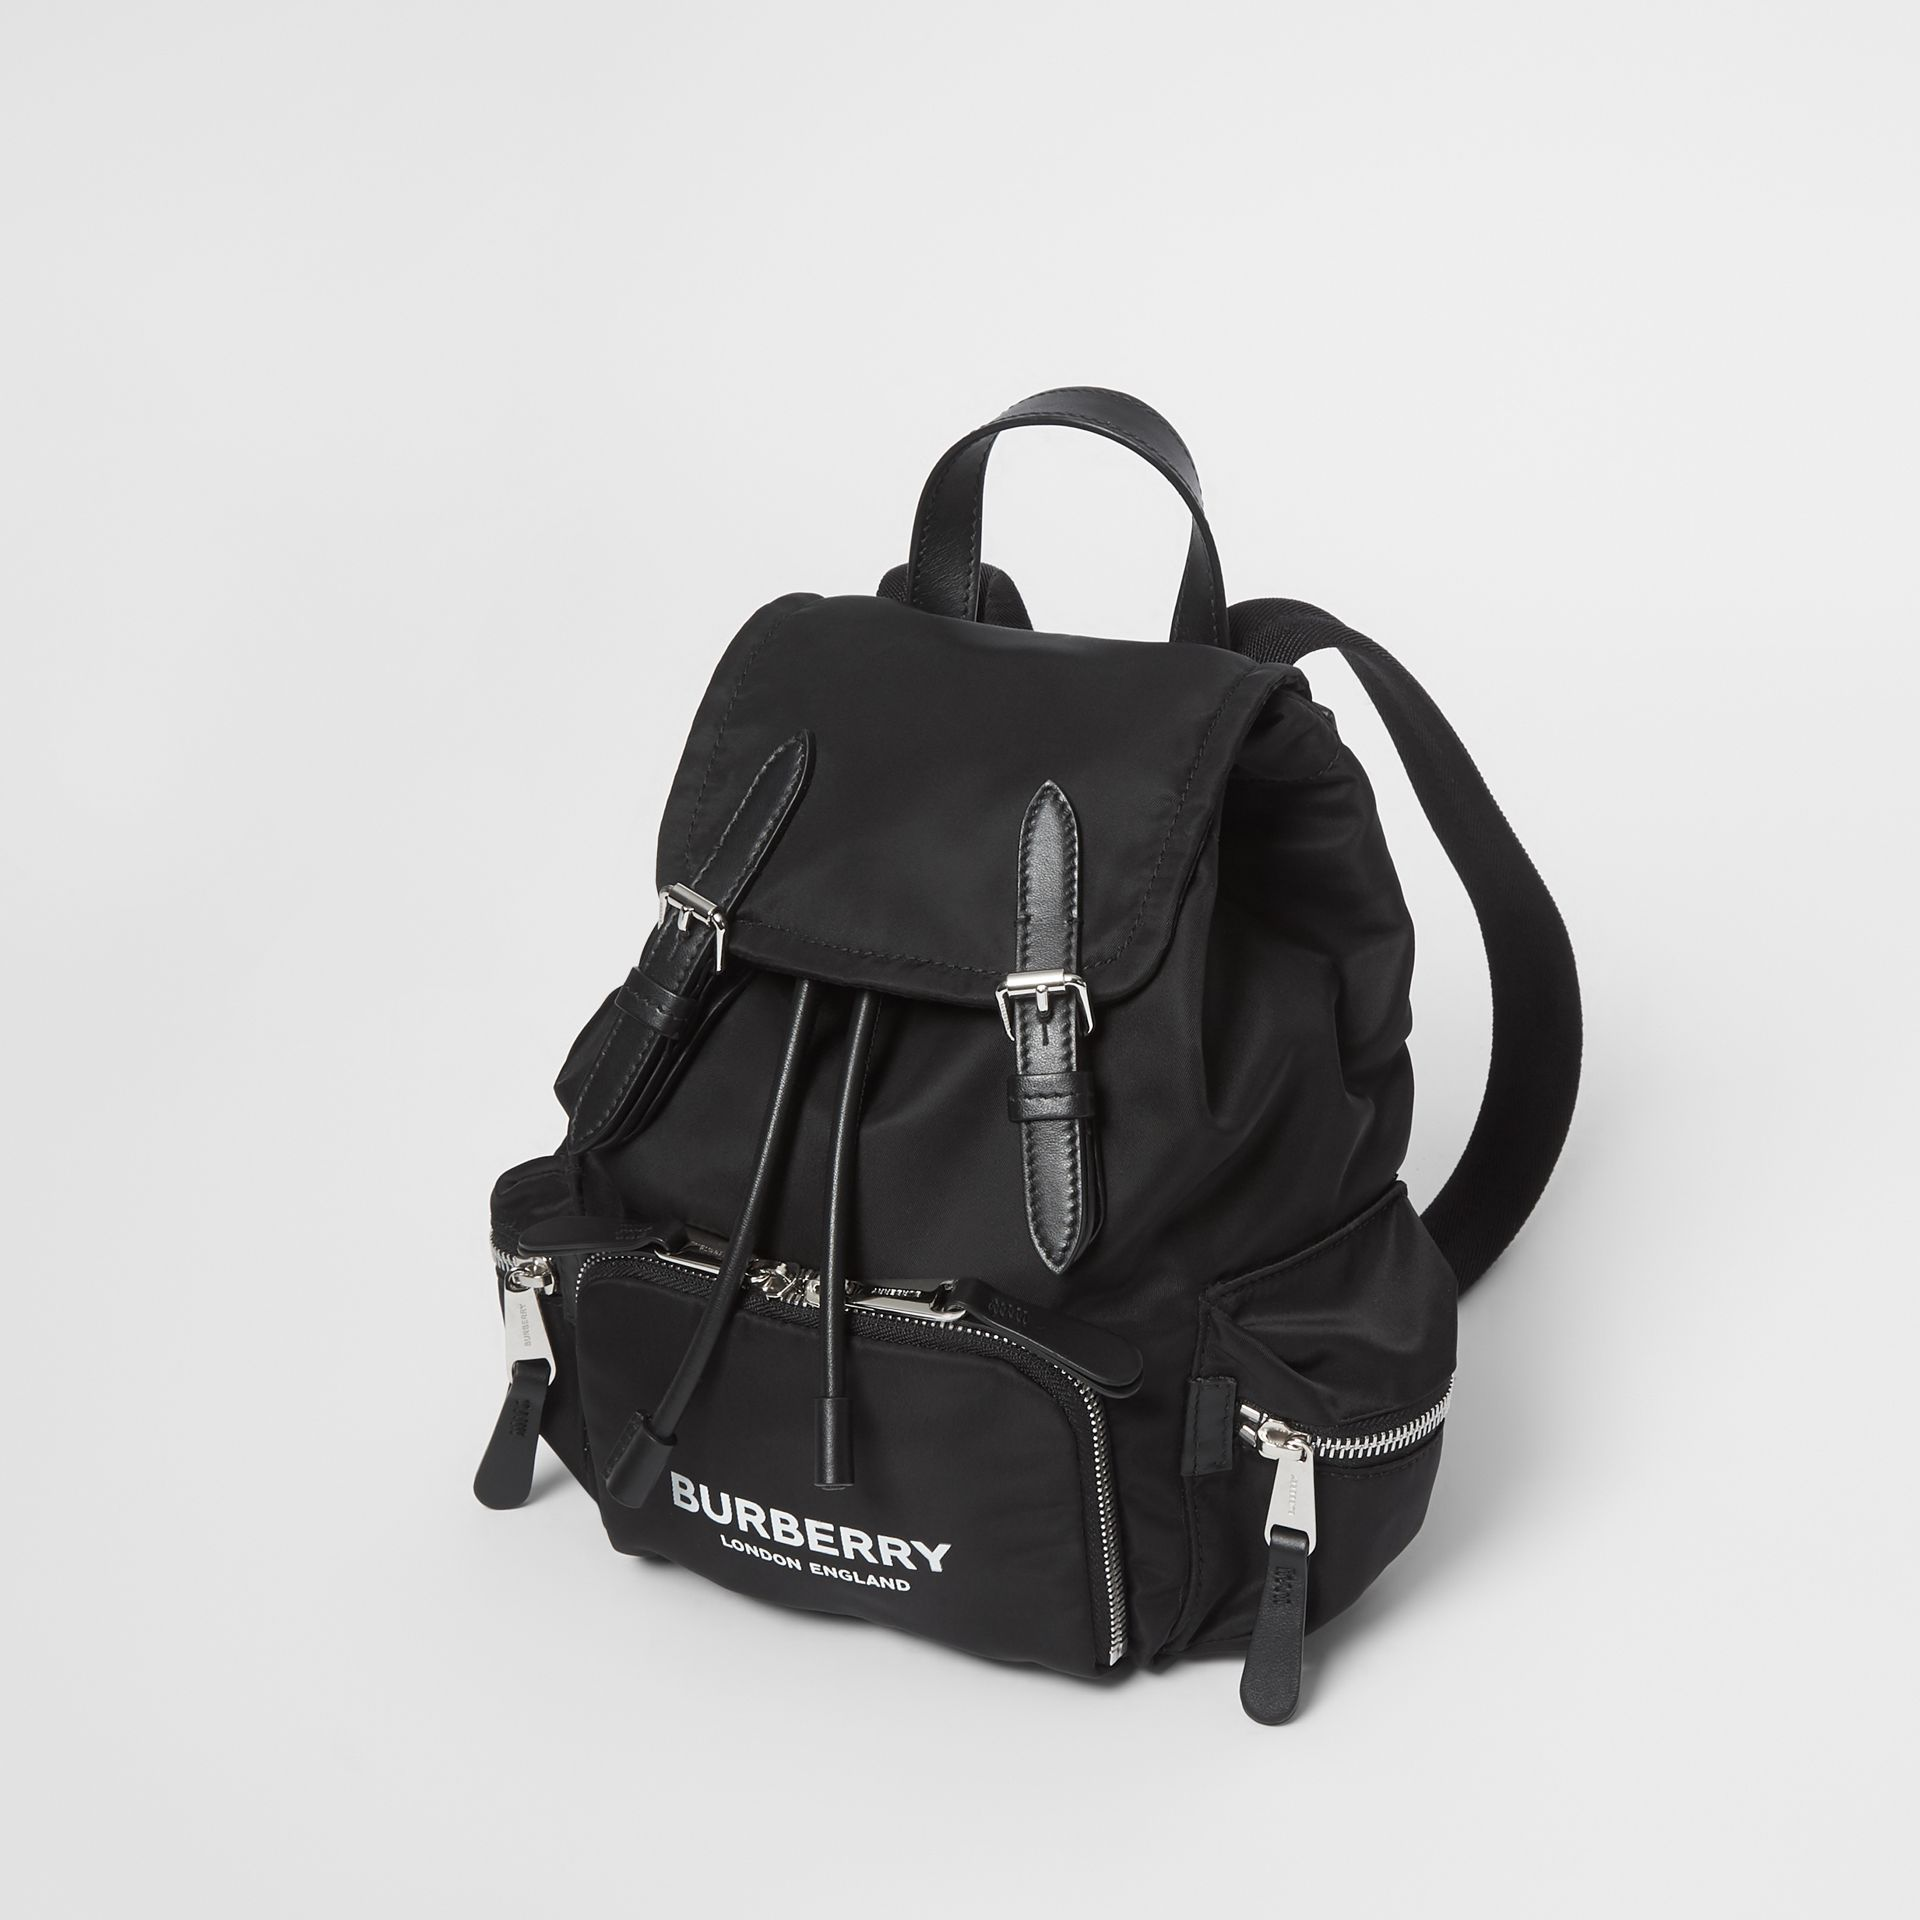 Petit sac The Rucksack en nylon avec logo (Noir) - Femme | Burberry - photo de la galerie 3